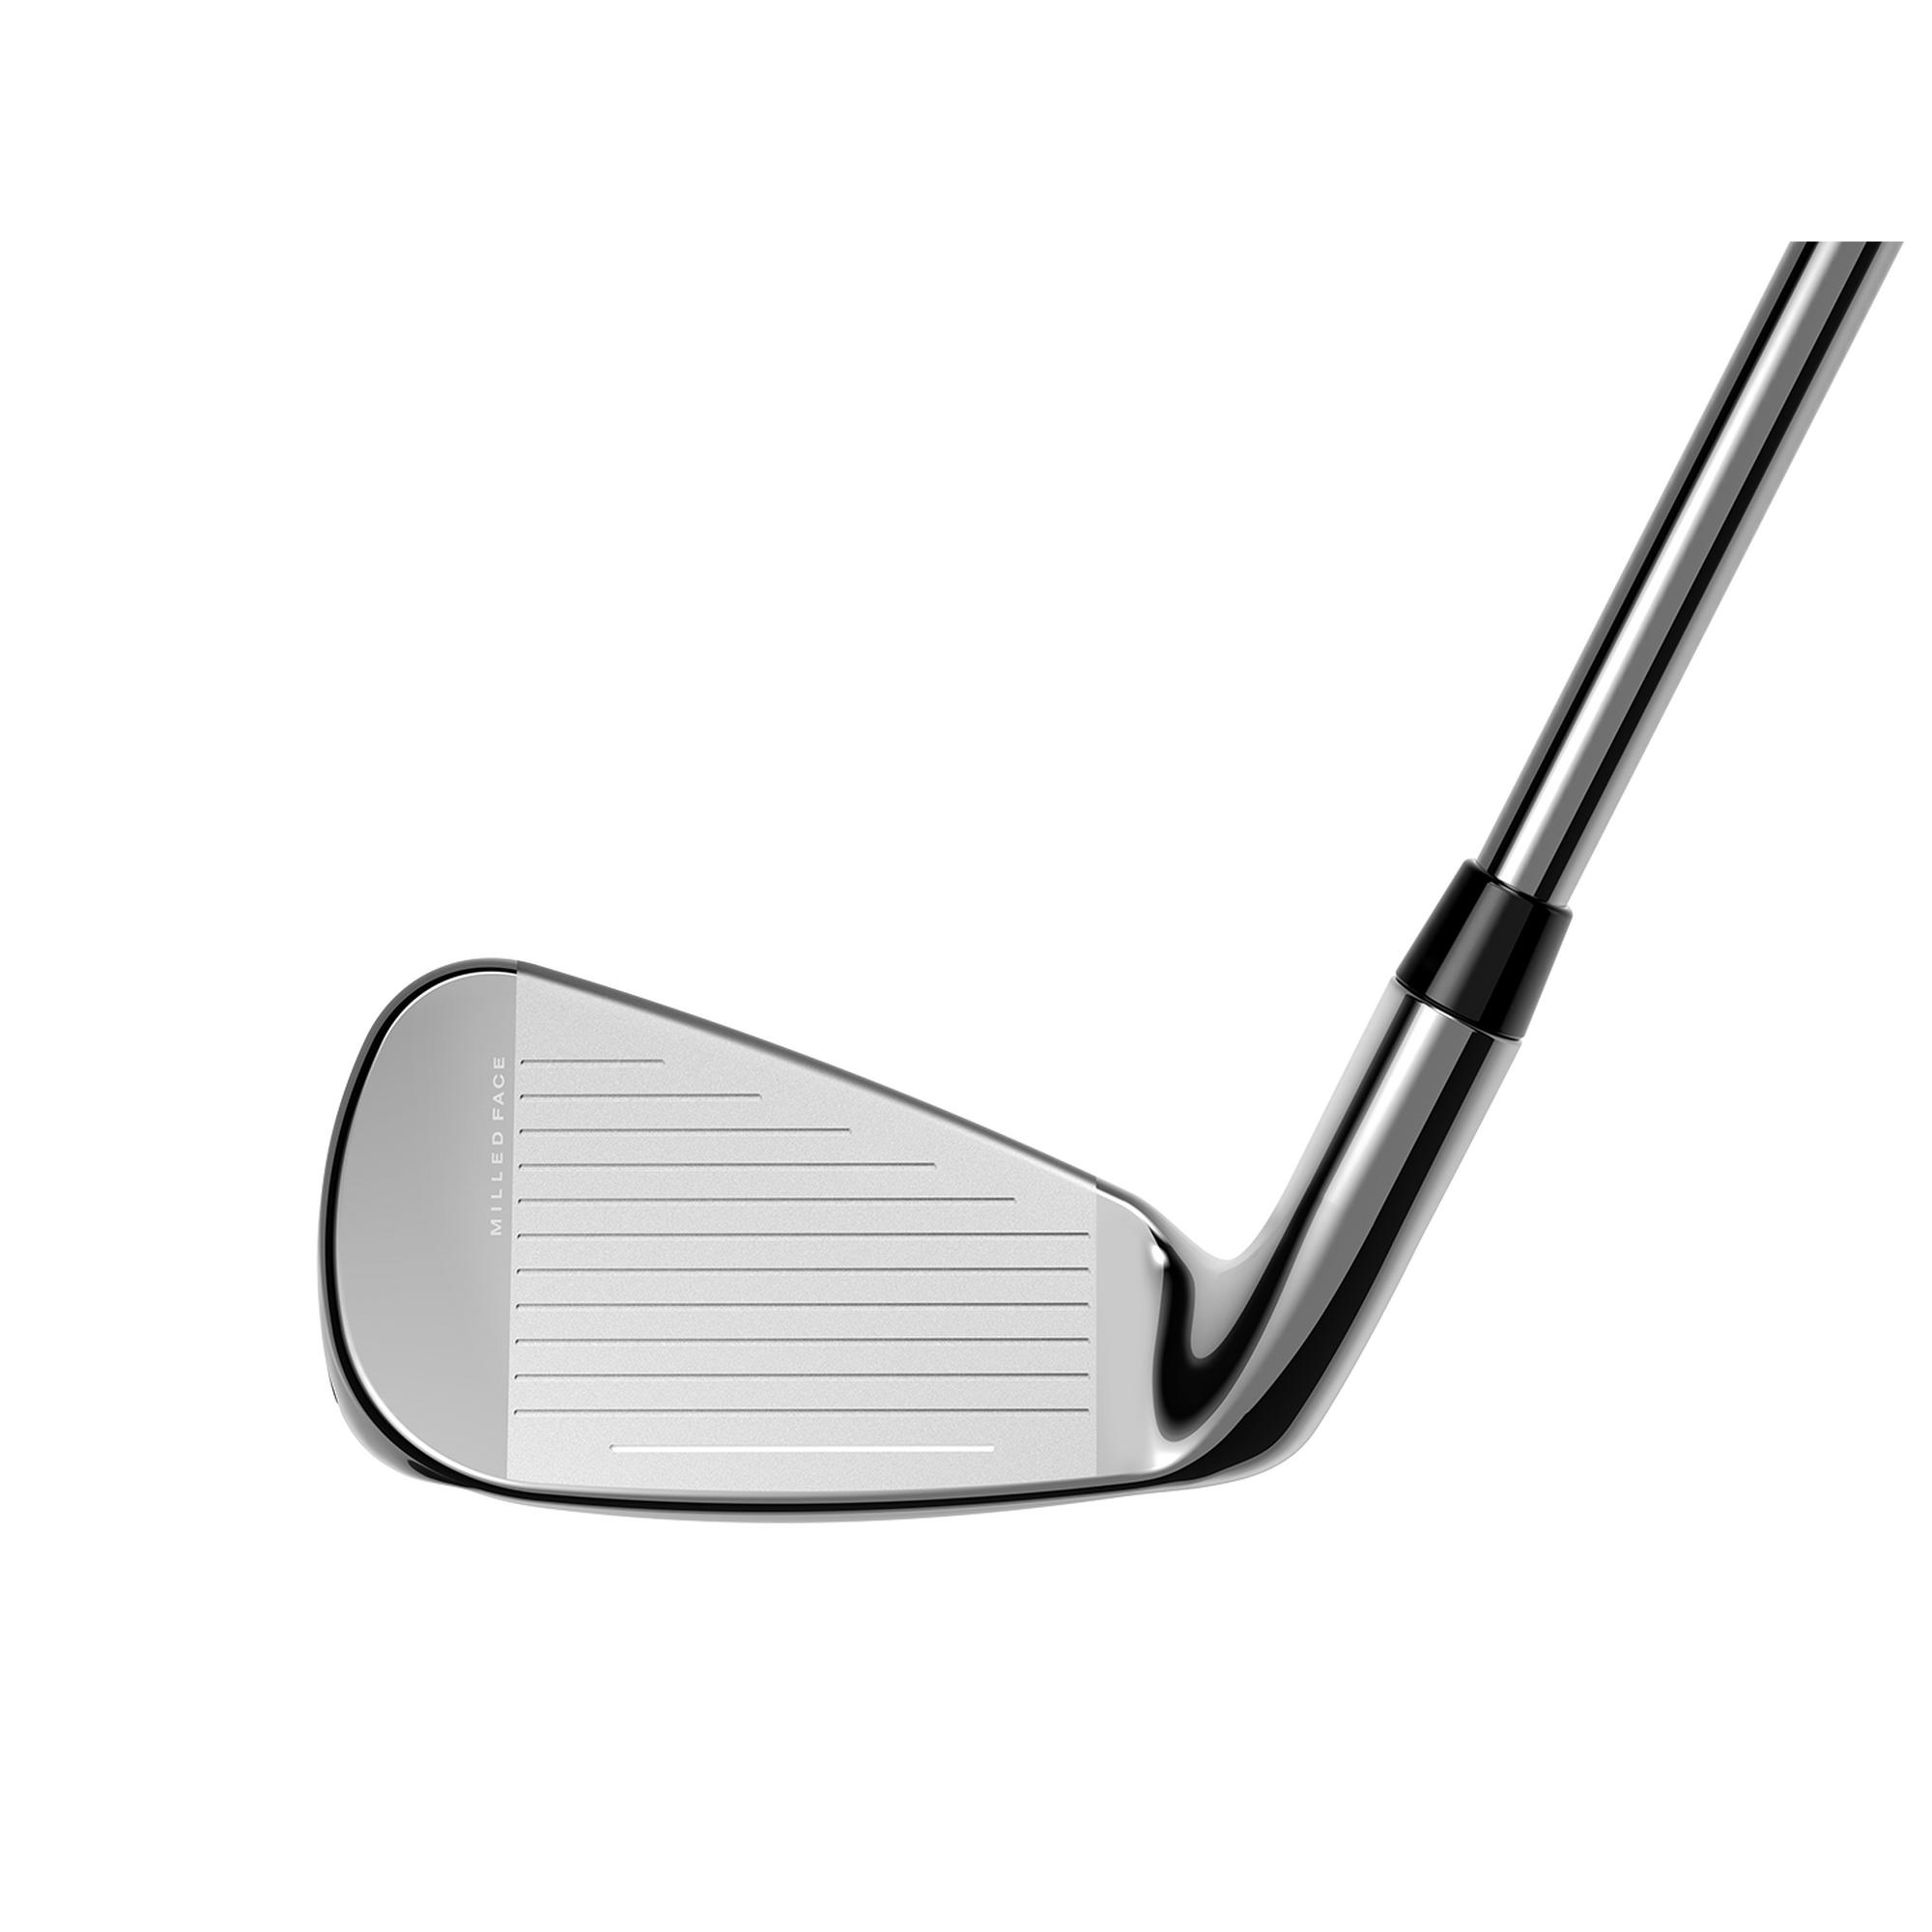 King F9 5-PW, GW Iron Set with Steel Shafts